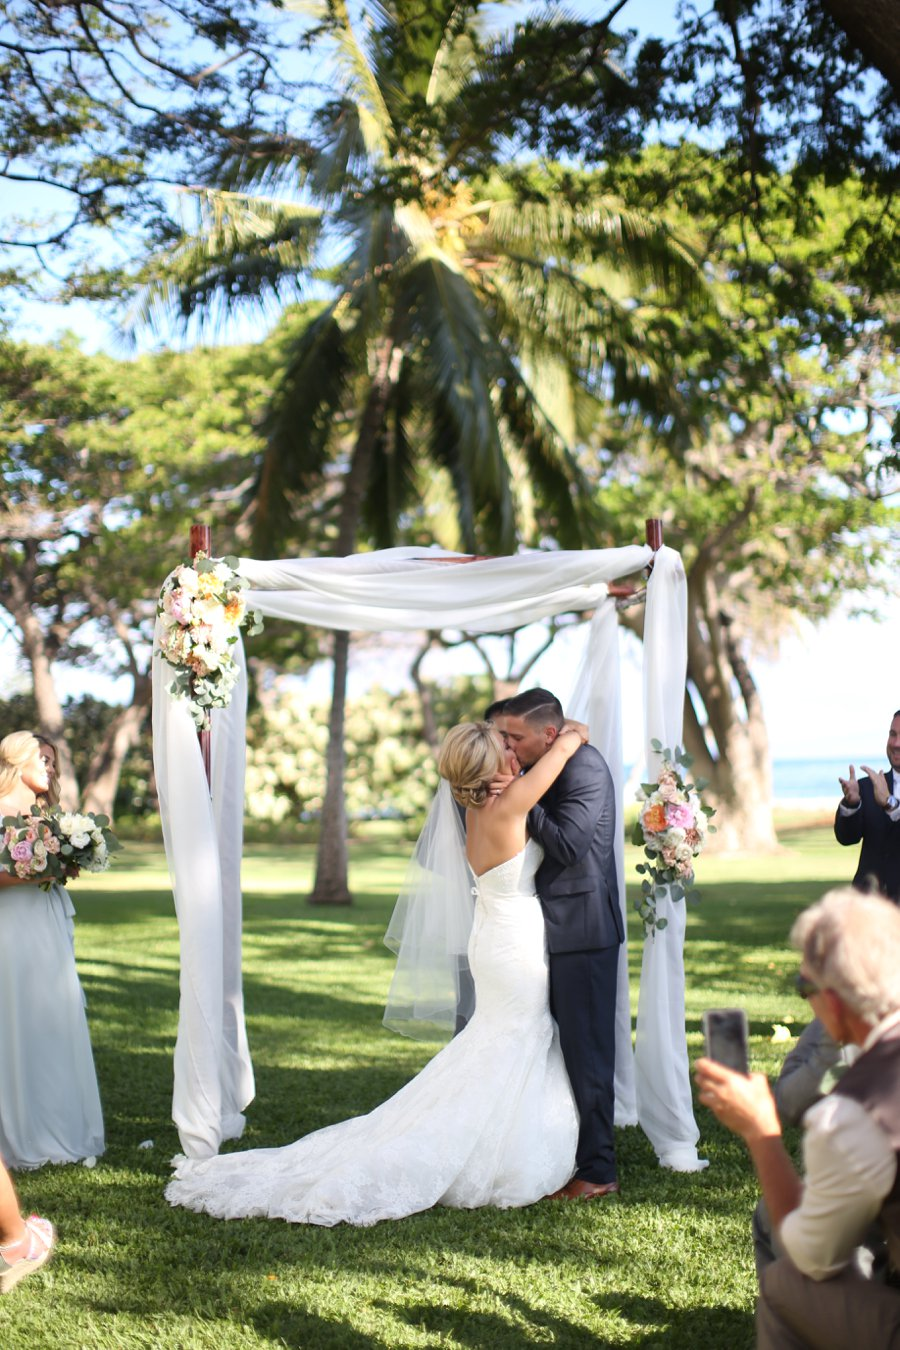 A Rustic Blush & White Intimate Maui Destination Wedding via TheELD.com